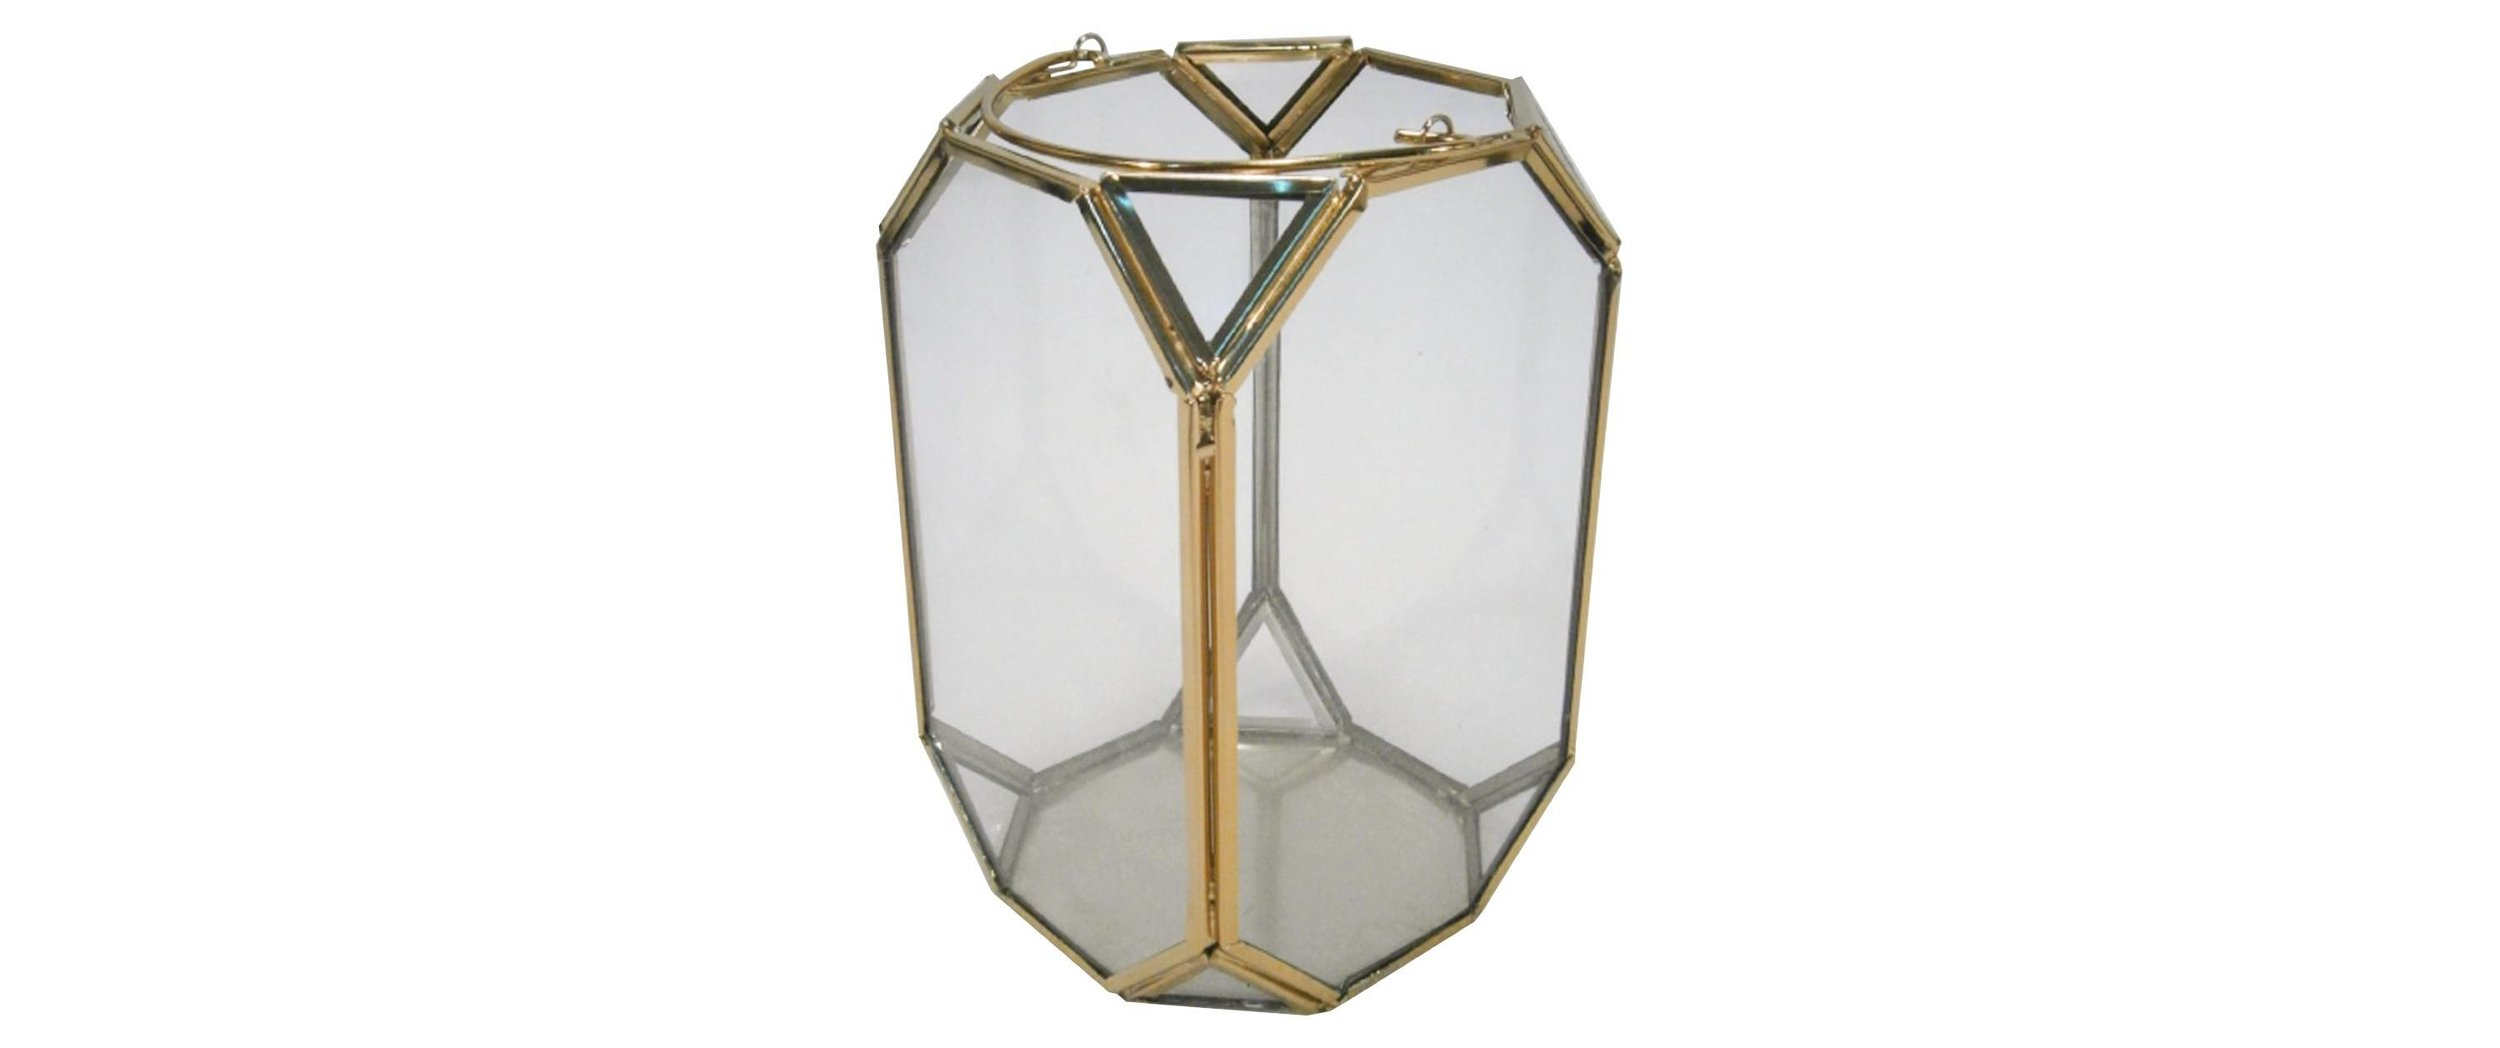 Candleholder Gold Glass Small and Large Sizes - (8) each